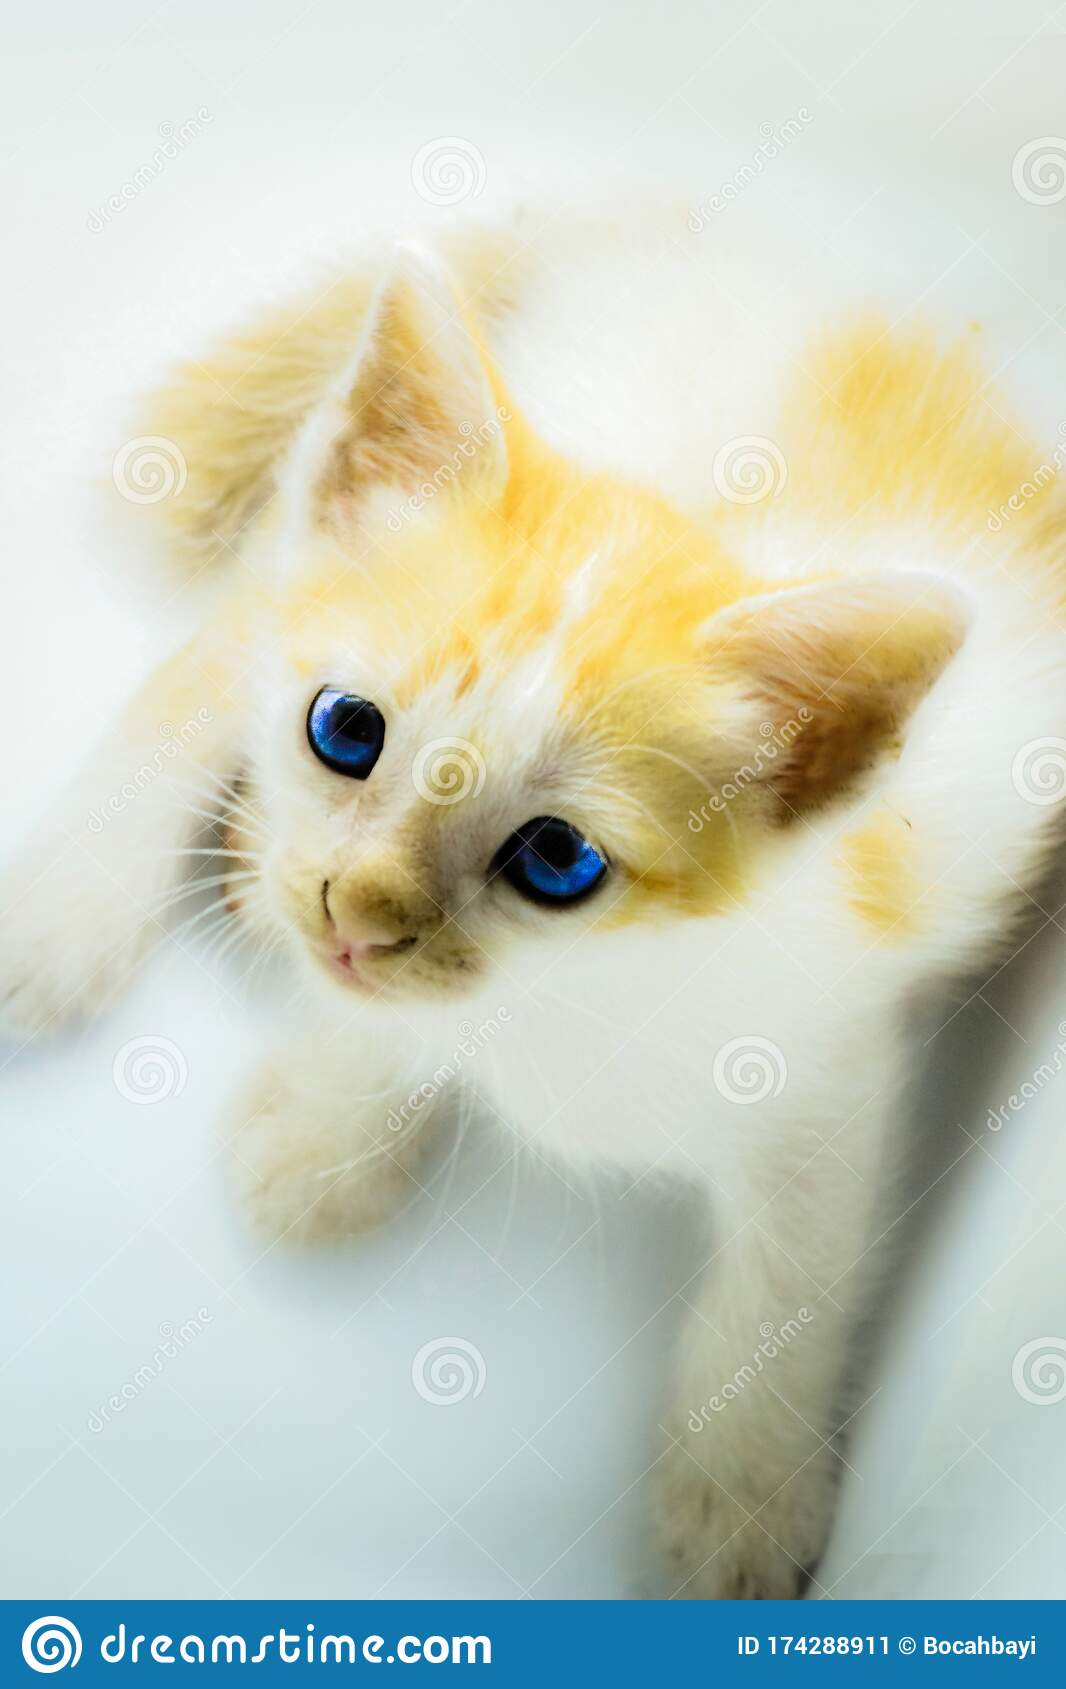 Photo Of Orange Stripped Kitten Persian Cross Kittens And Local Cats Stock Image Image Of Domestic Funny 174288911